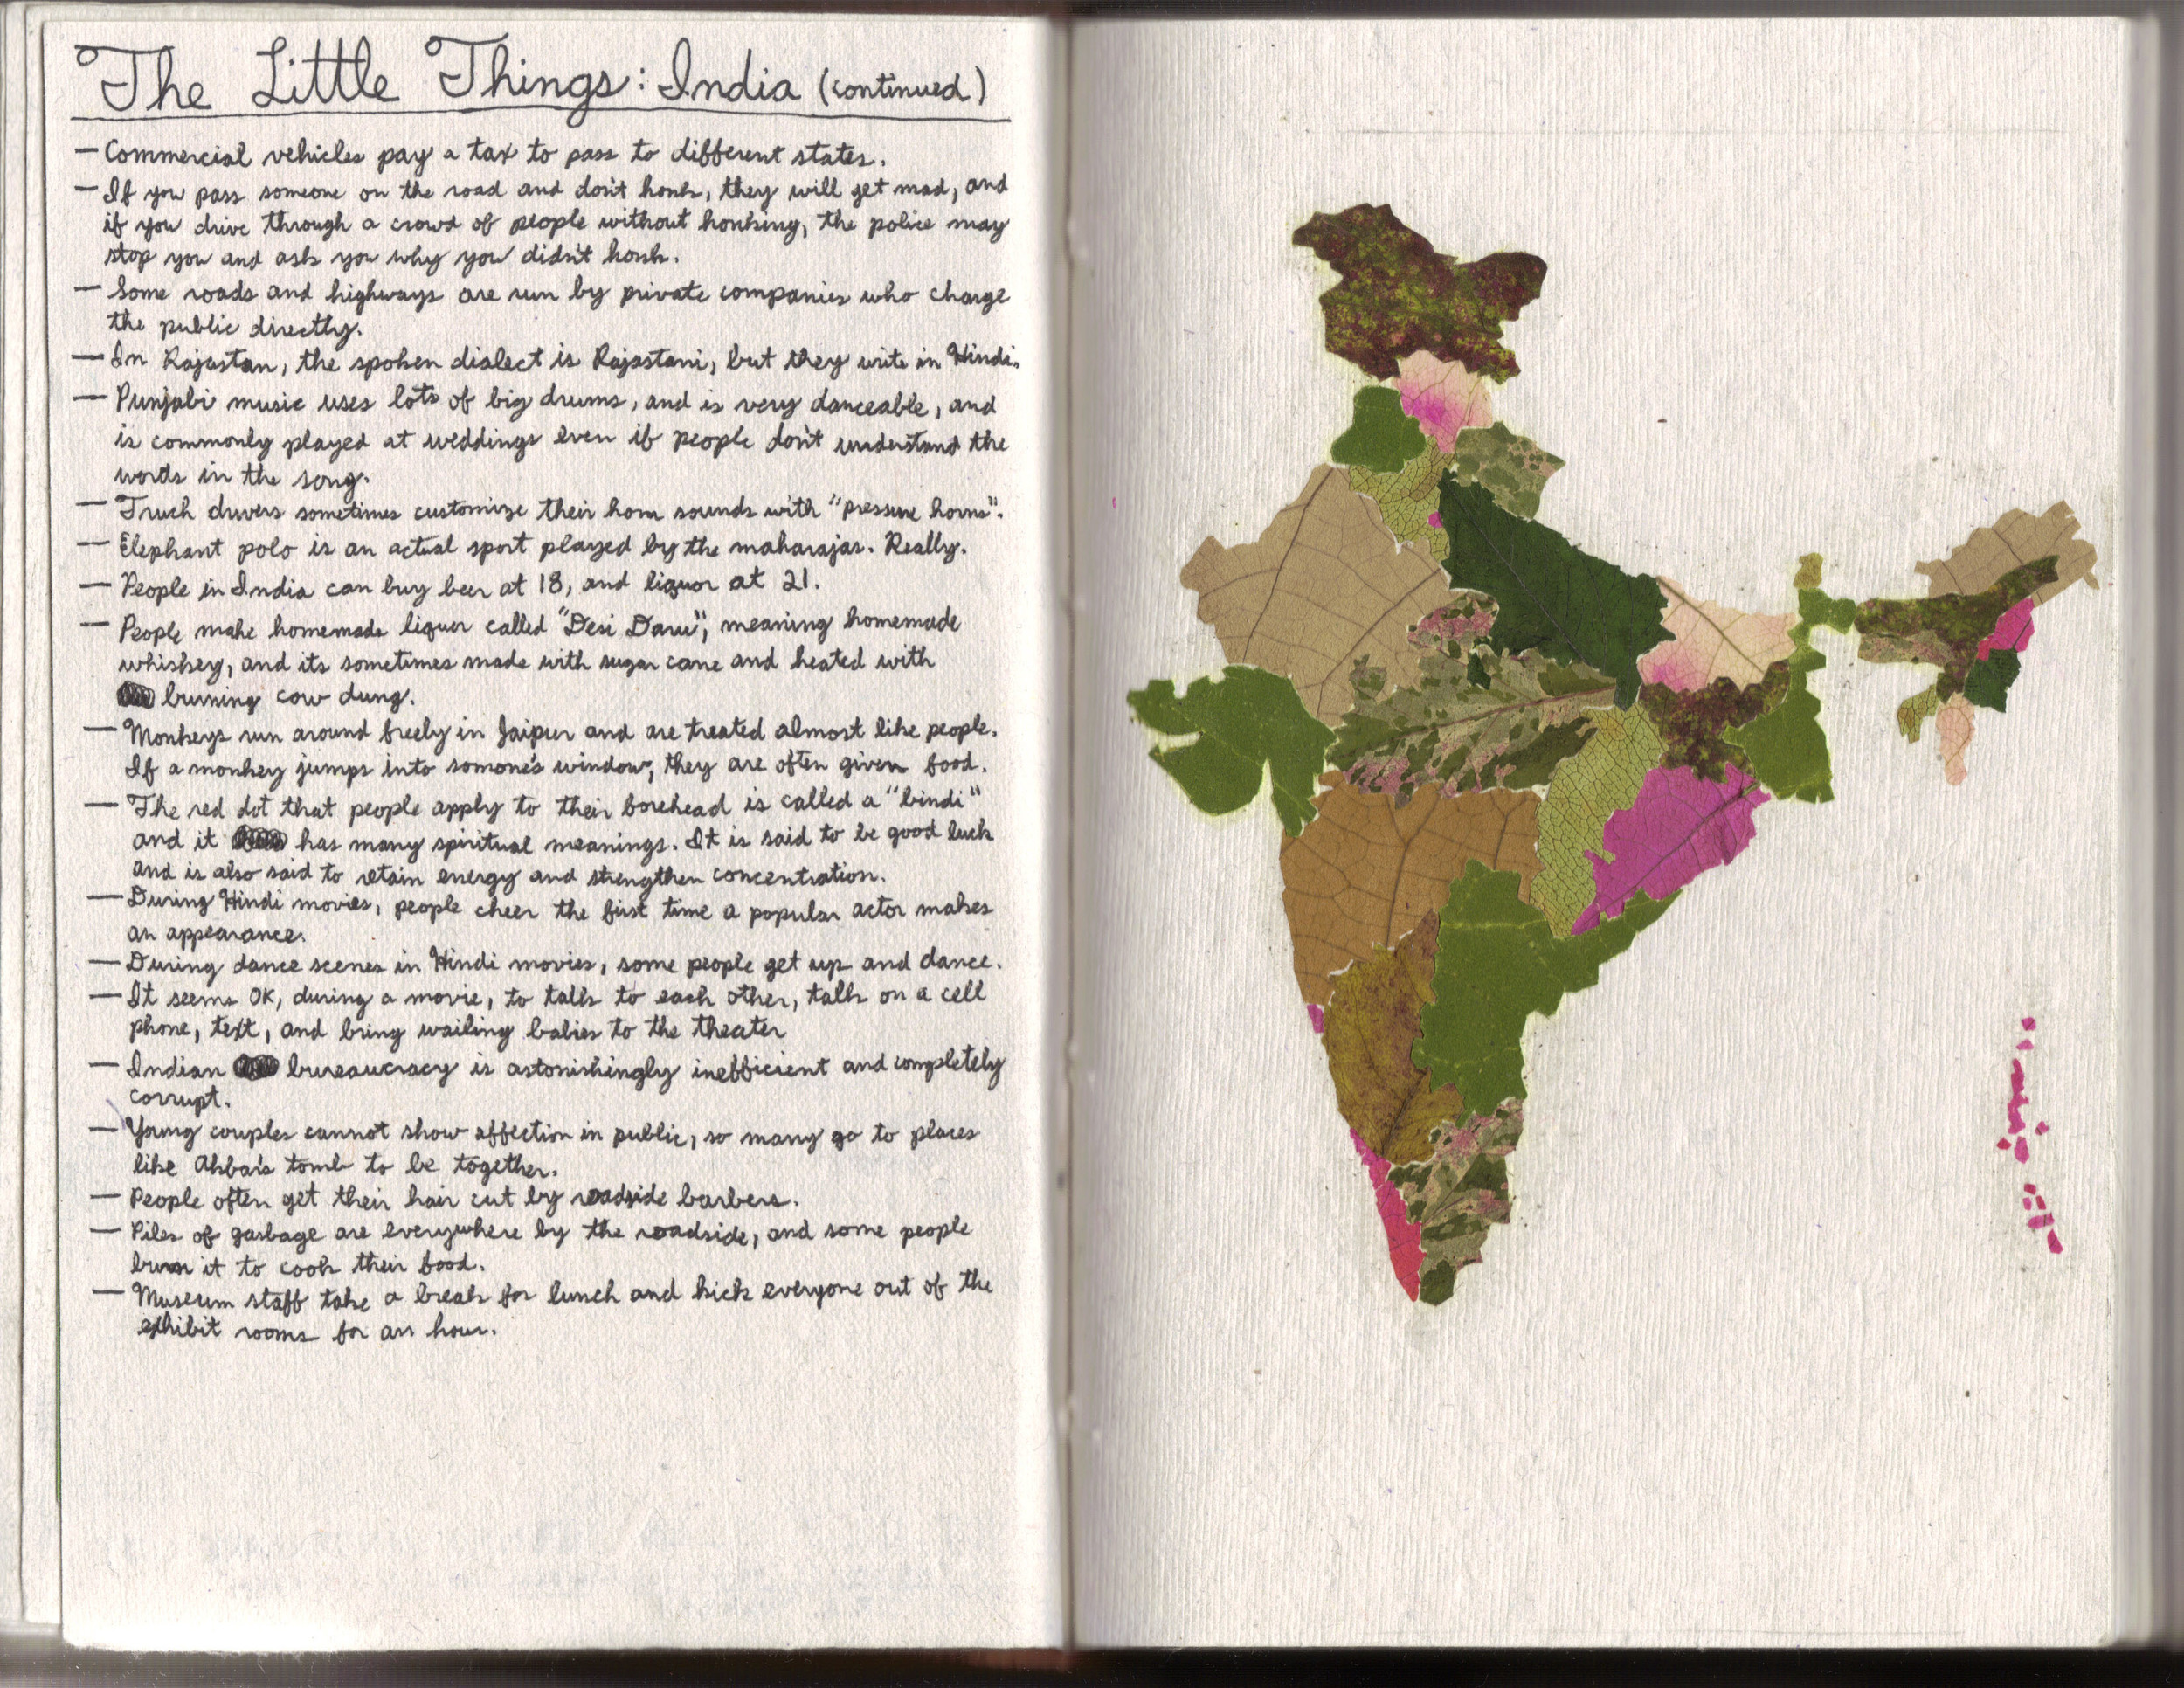 Map of India's states made from leaves and flowers collected in India